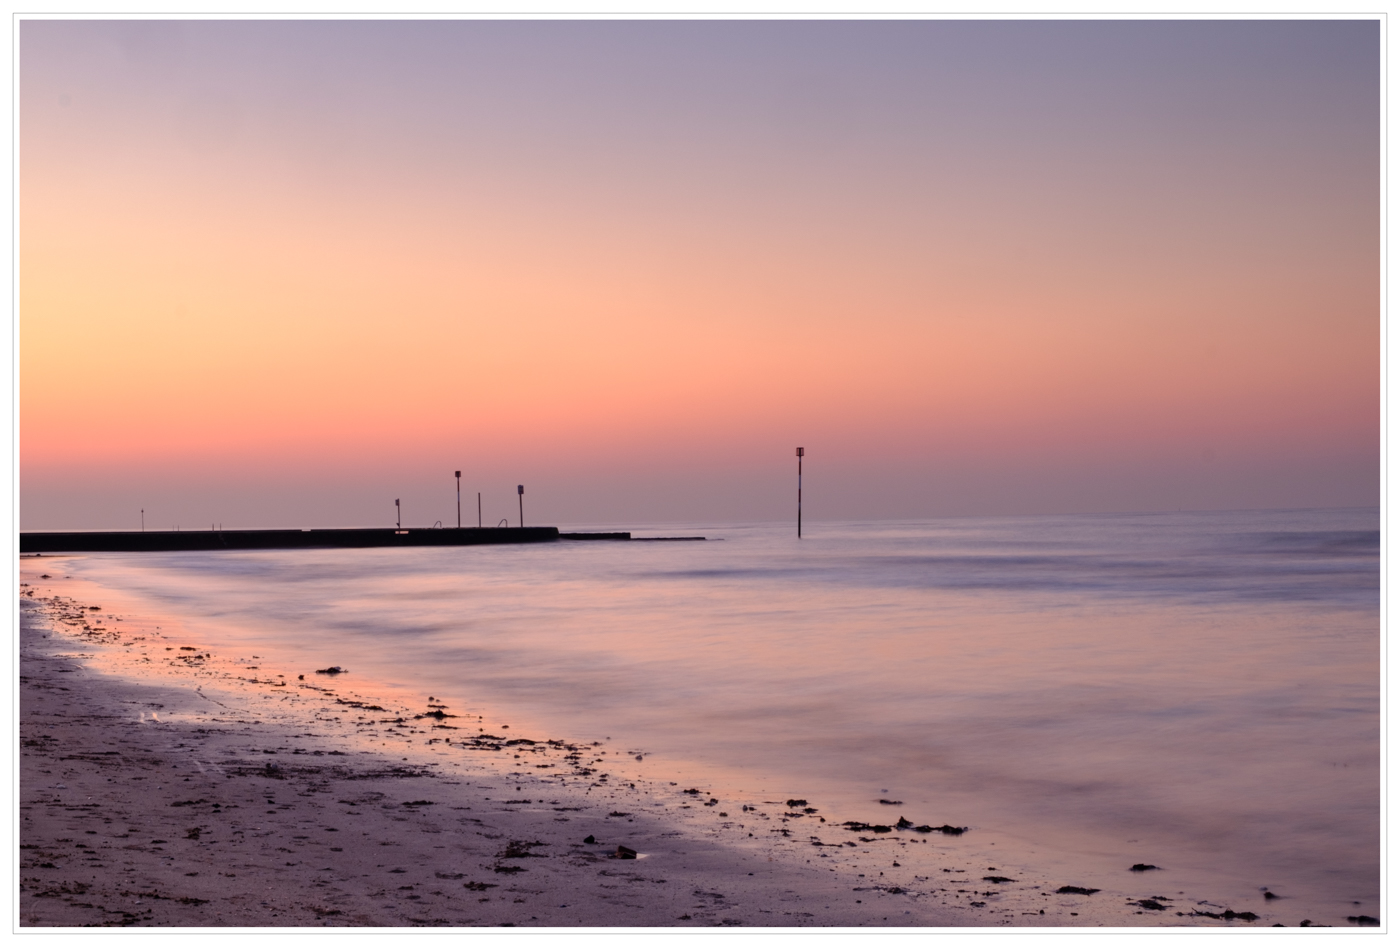 SUNSET AT MARGATE by Chris Reynolds